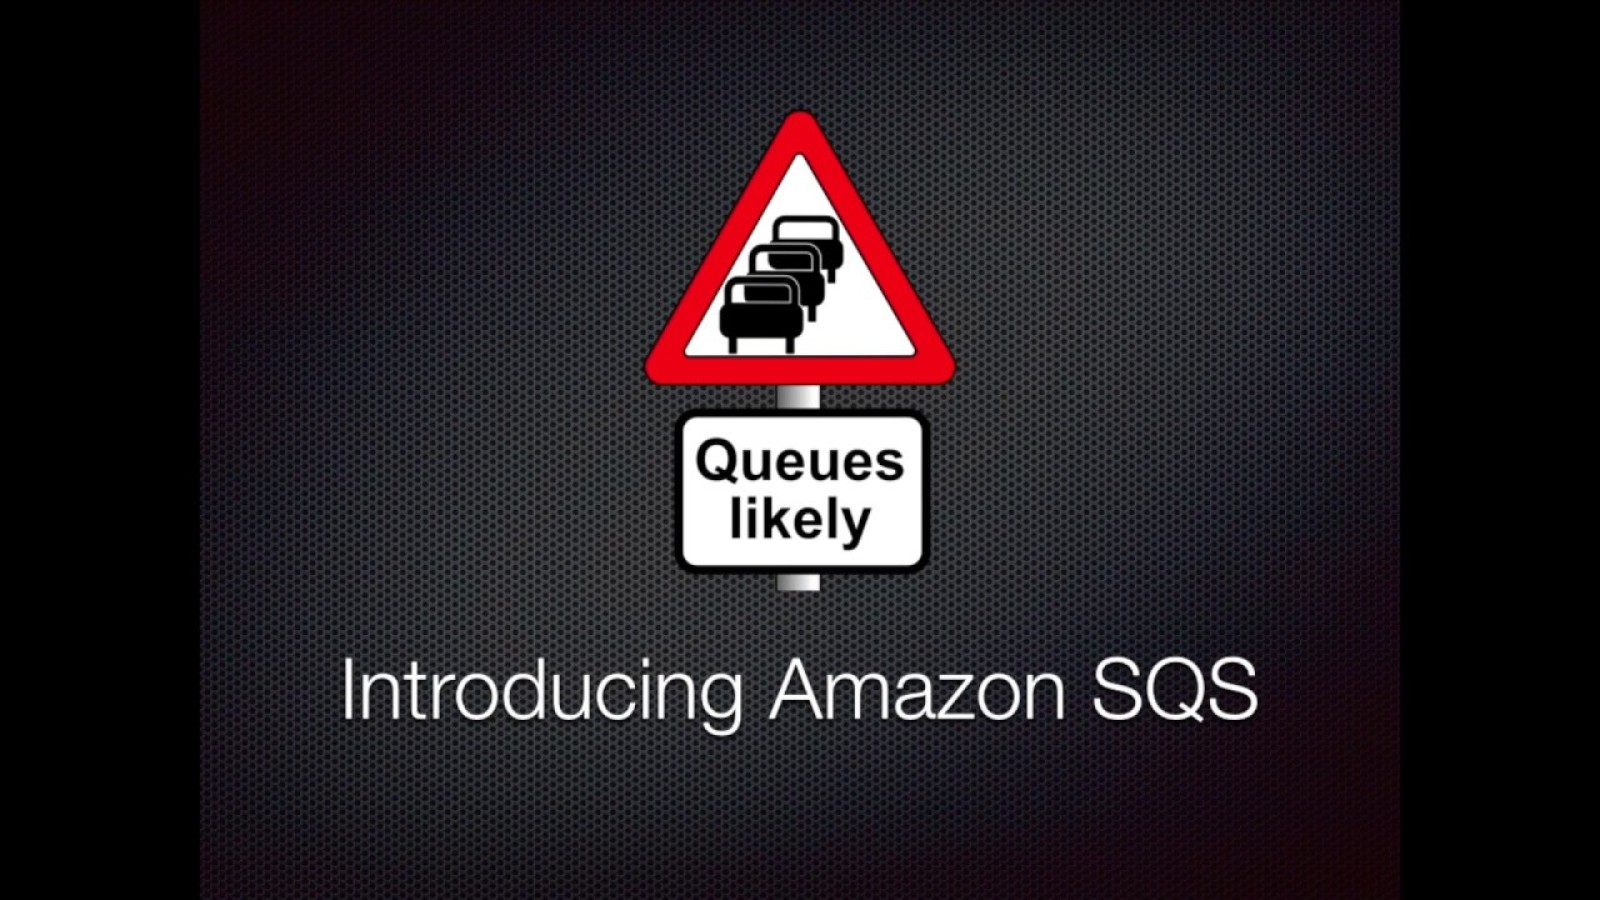 Introducing Amazon SQS